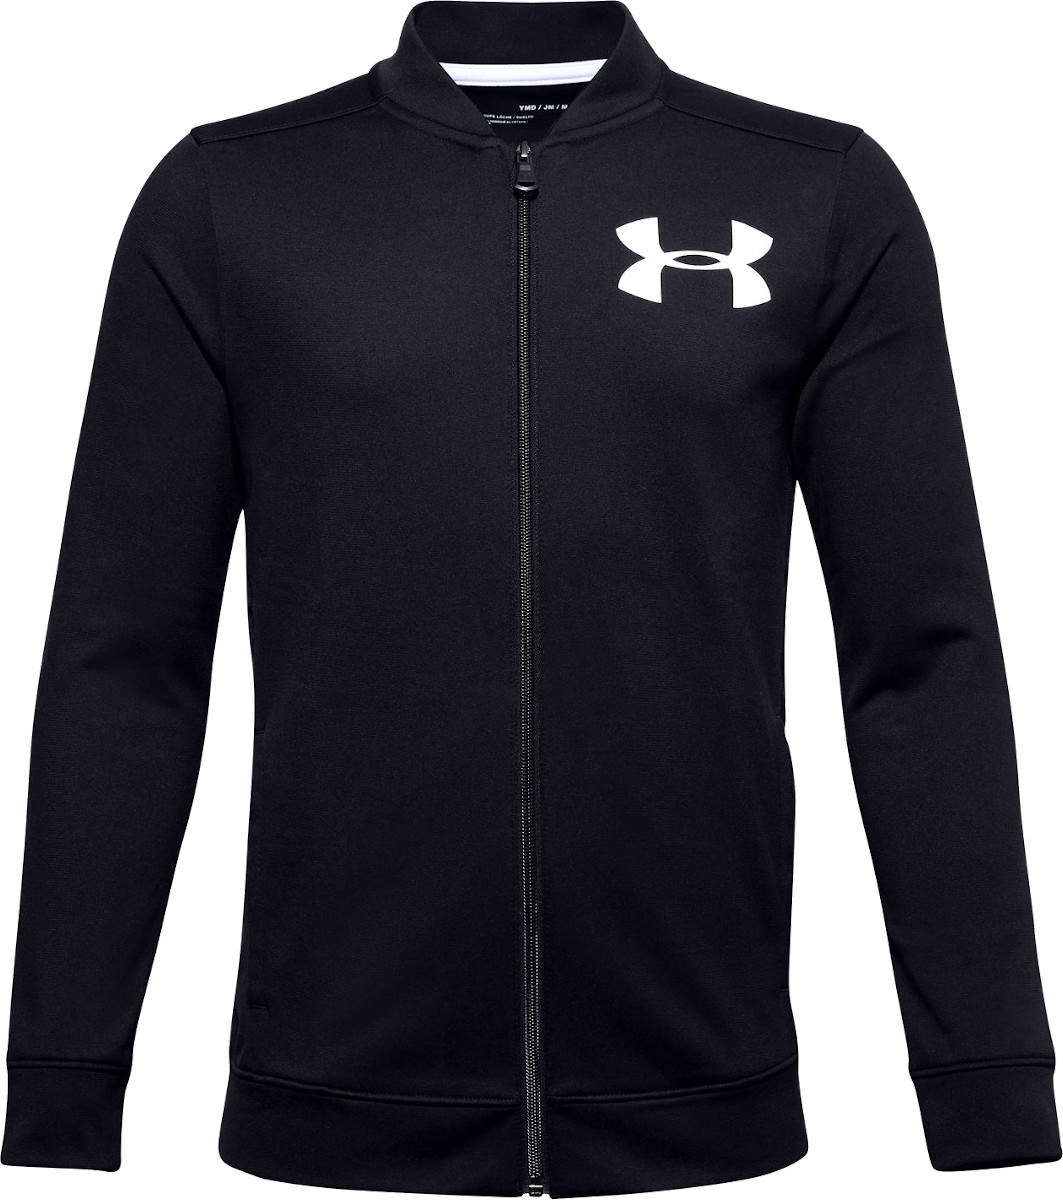 Jakna Under Armour UA Pennant Jacket 2.0